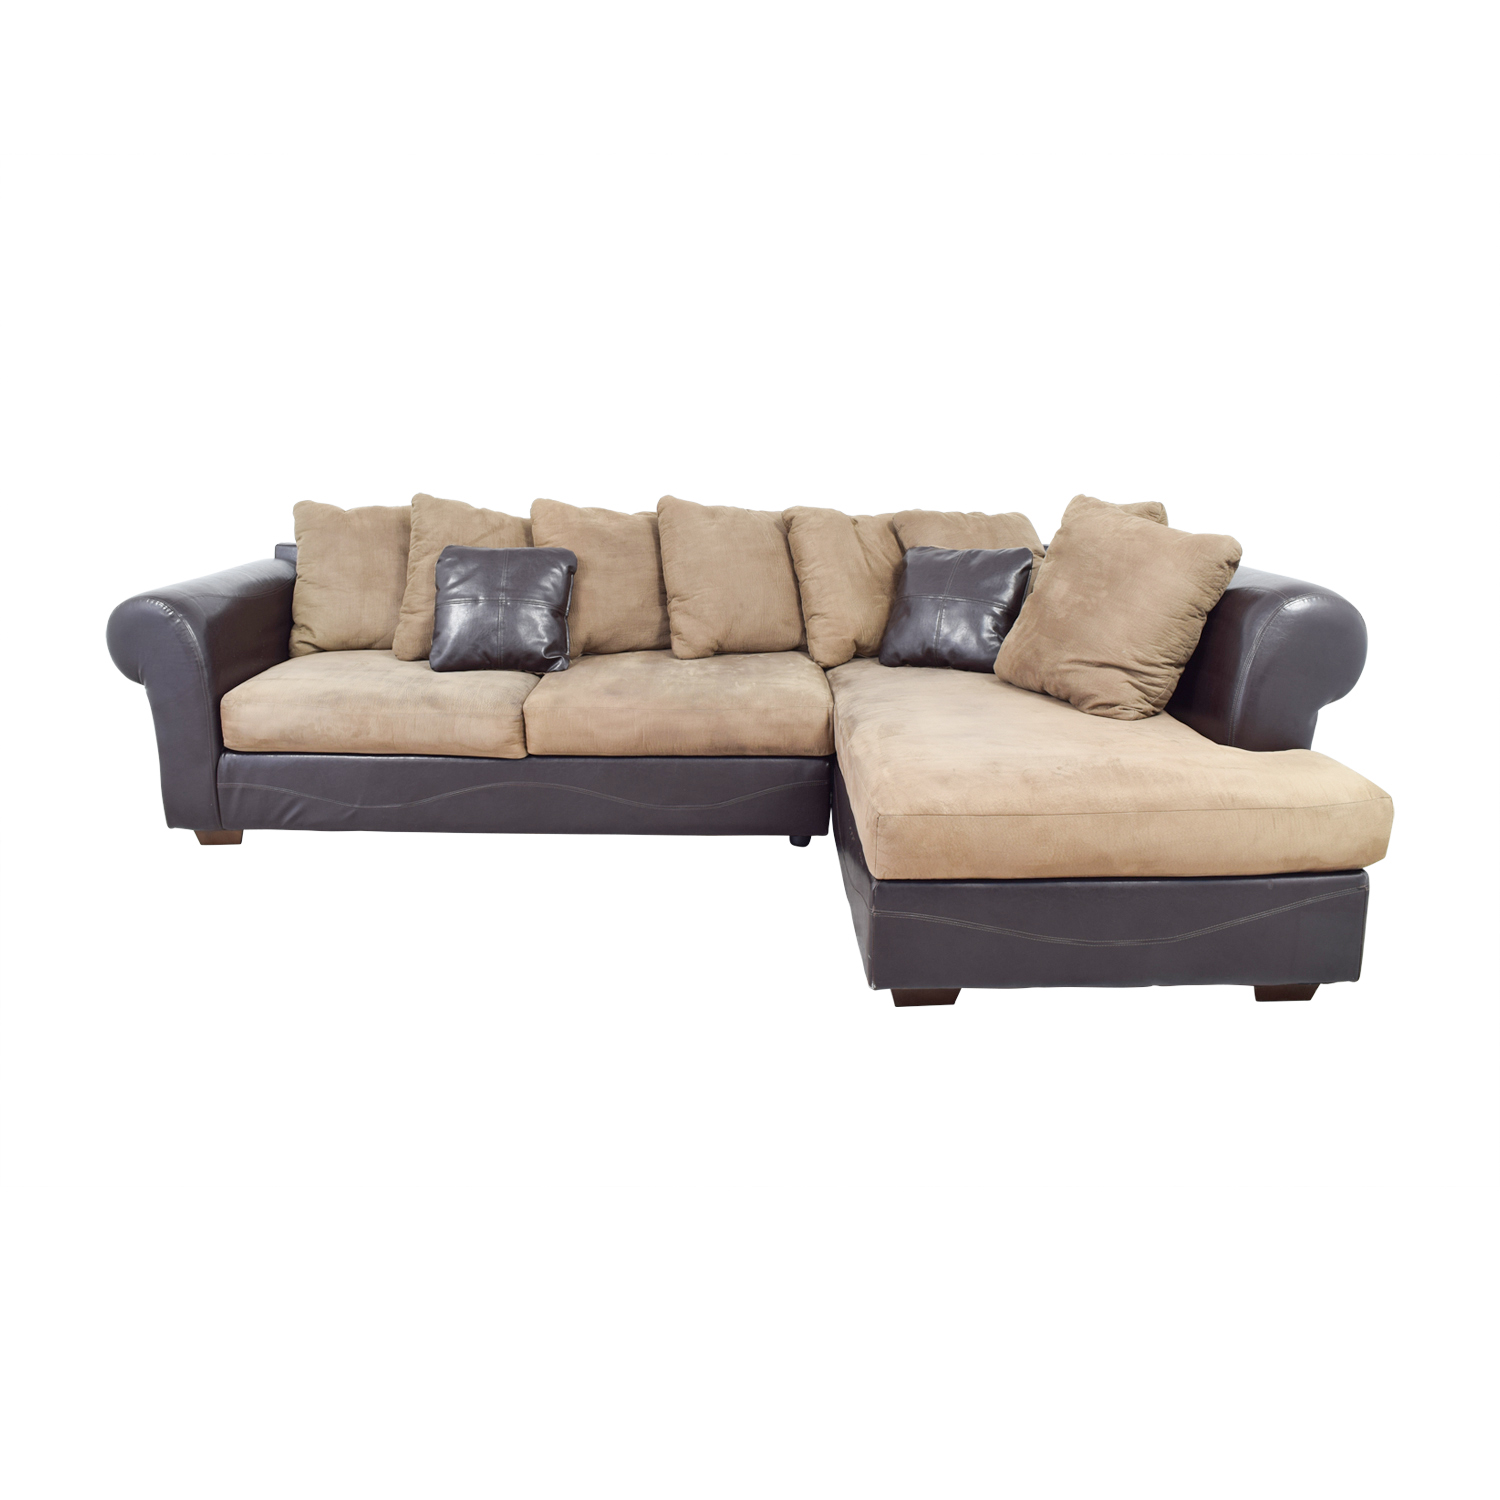 Ashley Furniture Brown Leather and Tan Microfiber Chaise Sectional sale